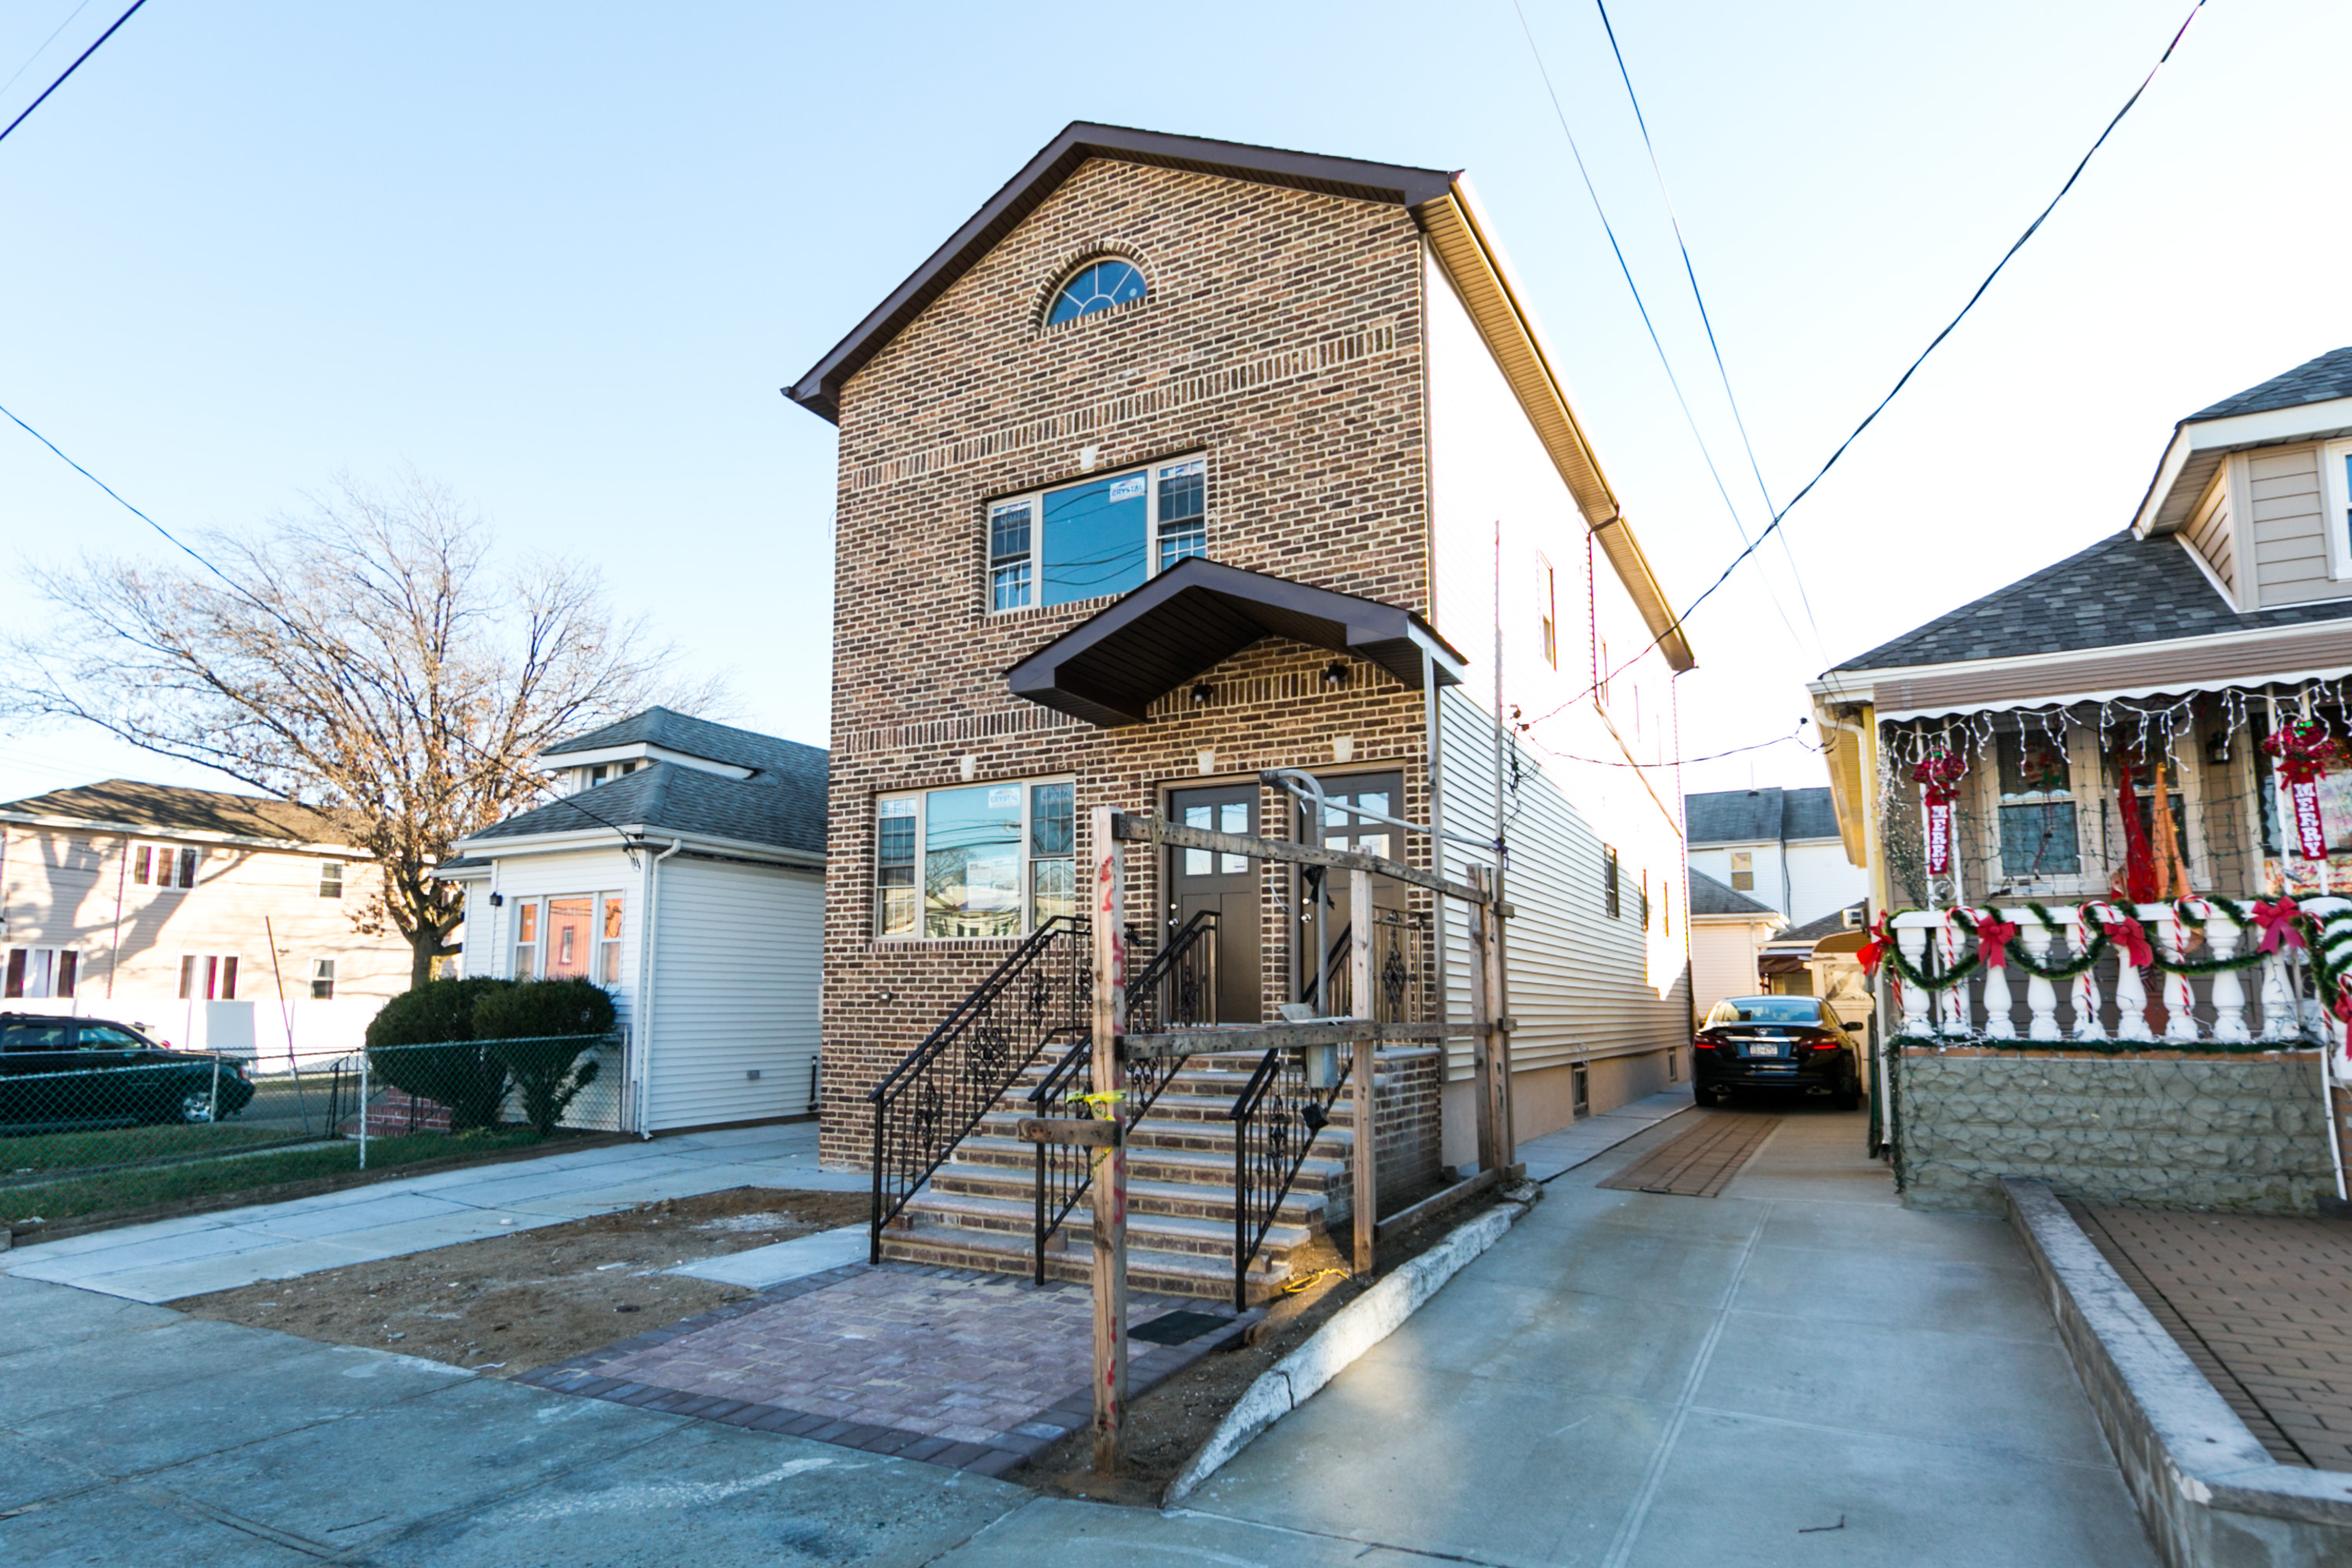 105 16 Sutter Ave ⋆ Keystone Realty Of Greater New York